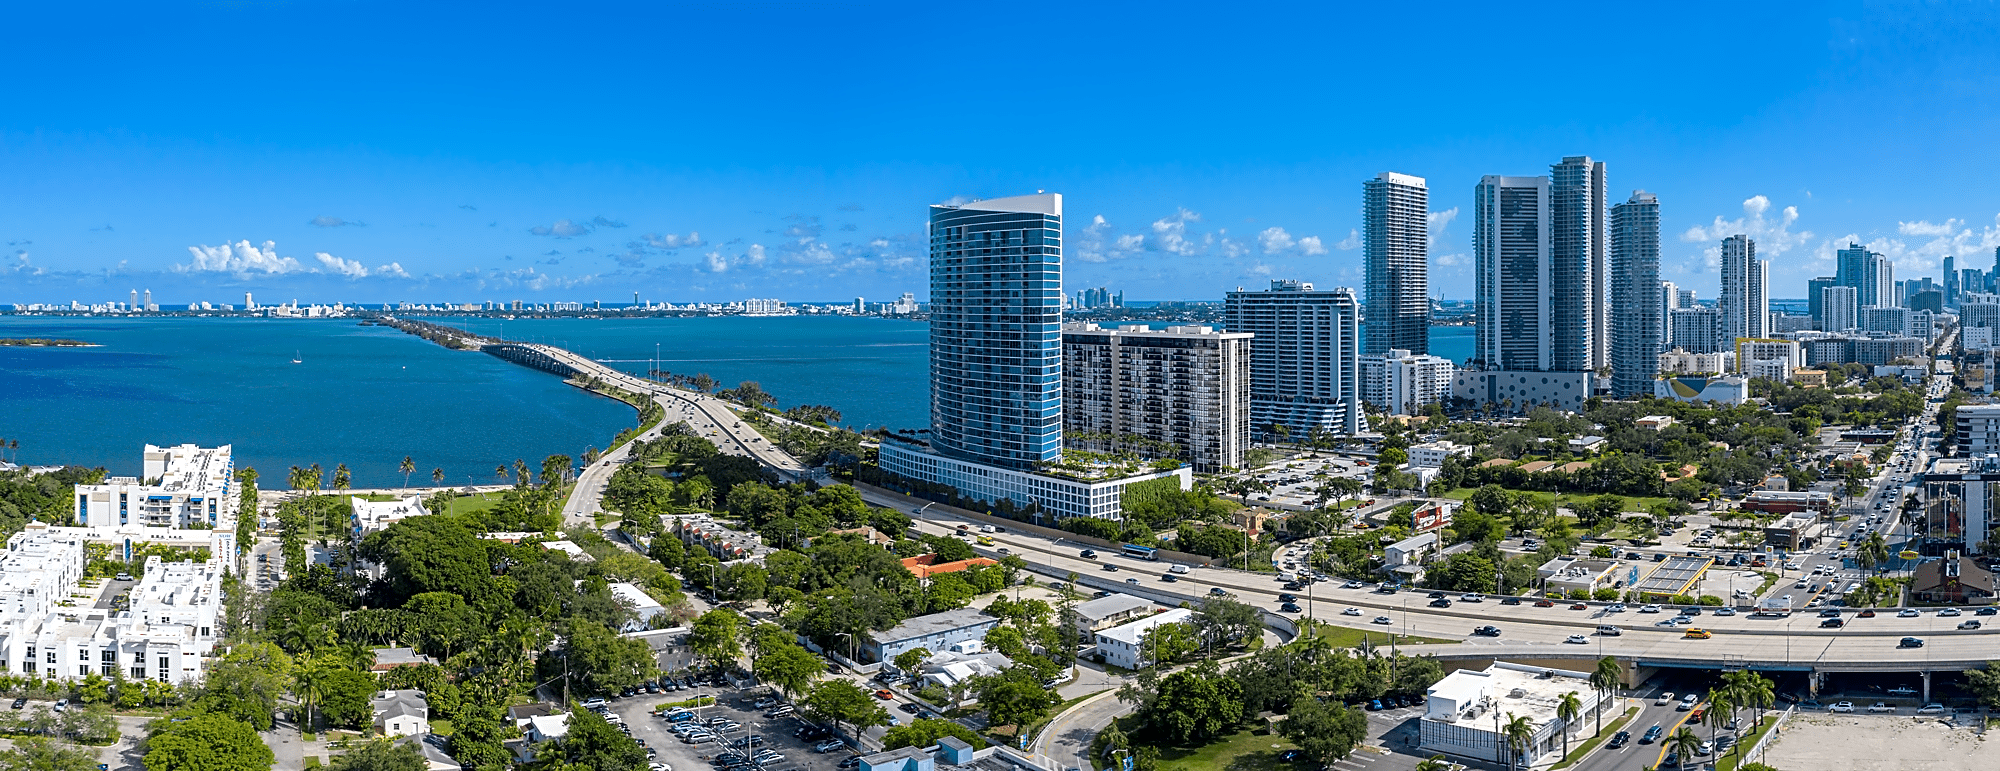 Apartments Near Barry Quadro for Barry University Students in Miami Shores, FL